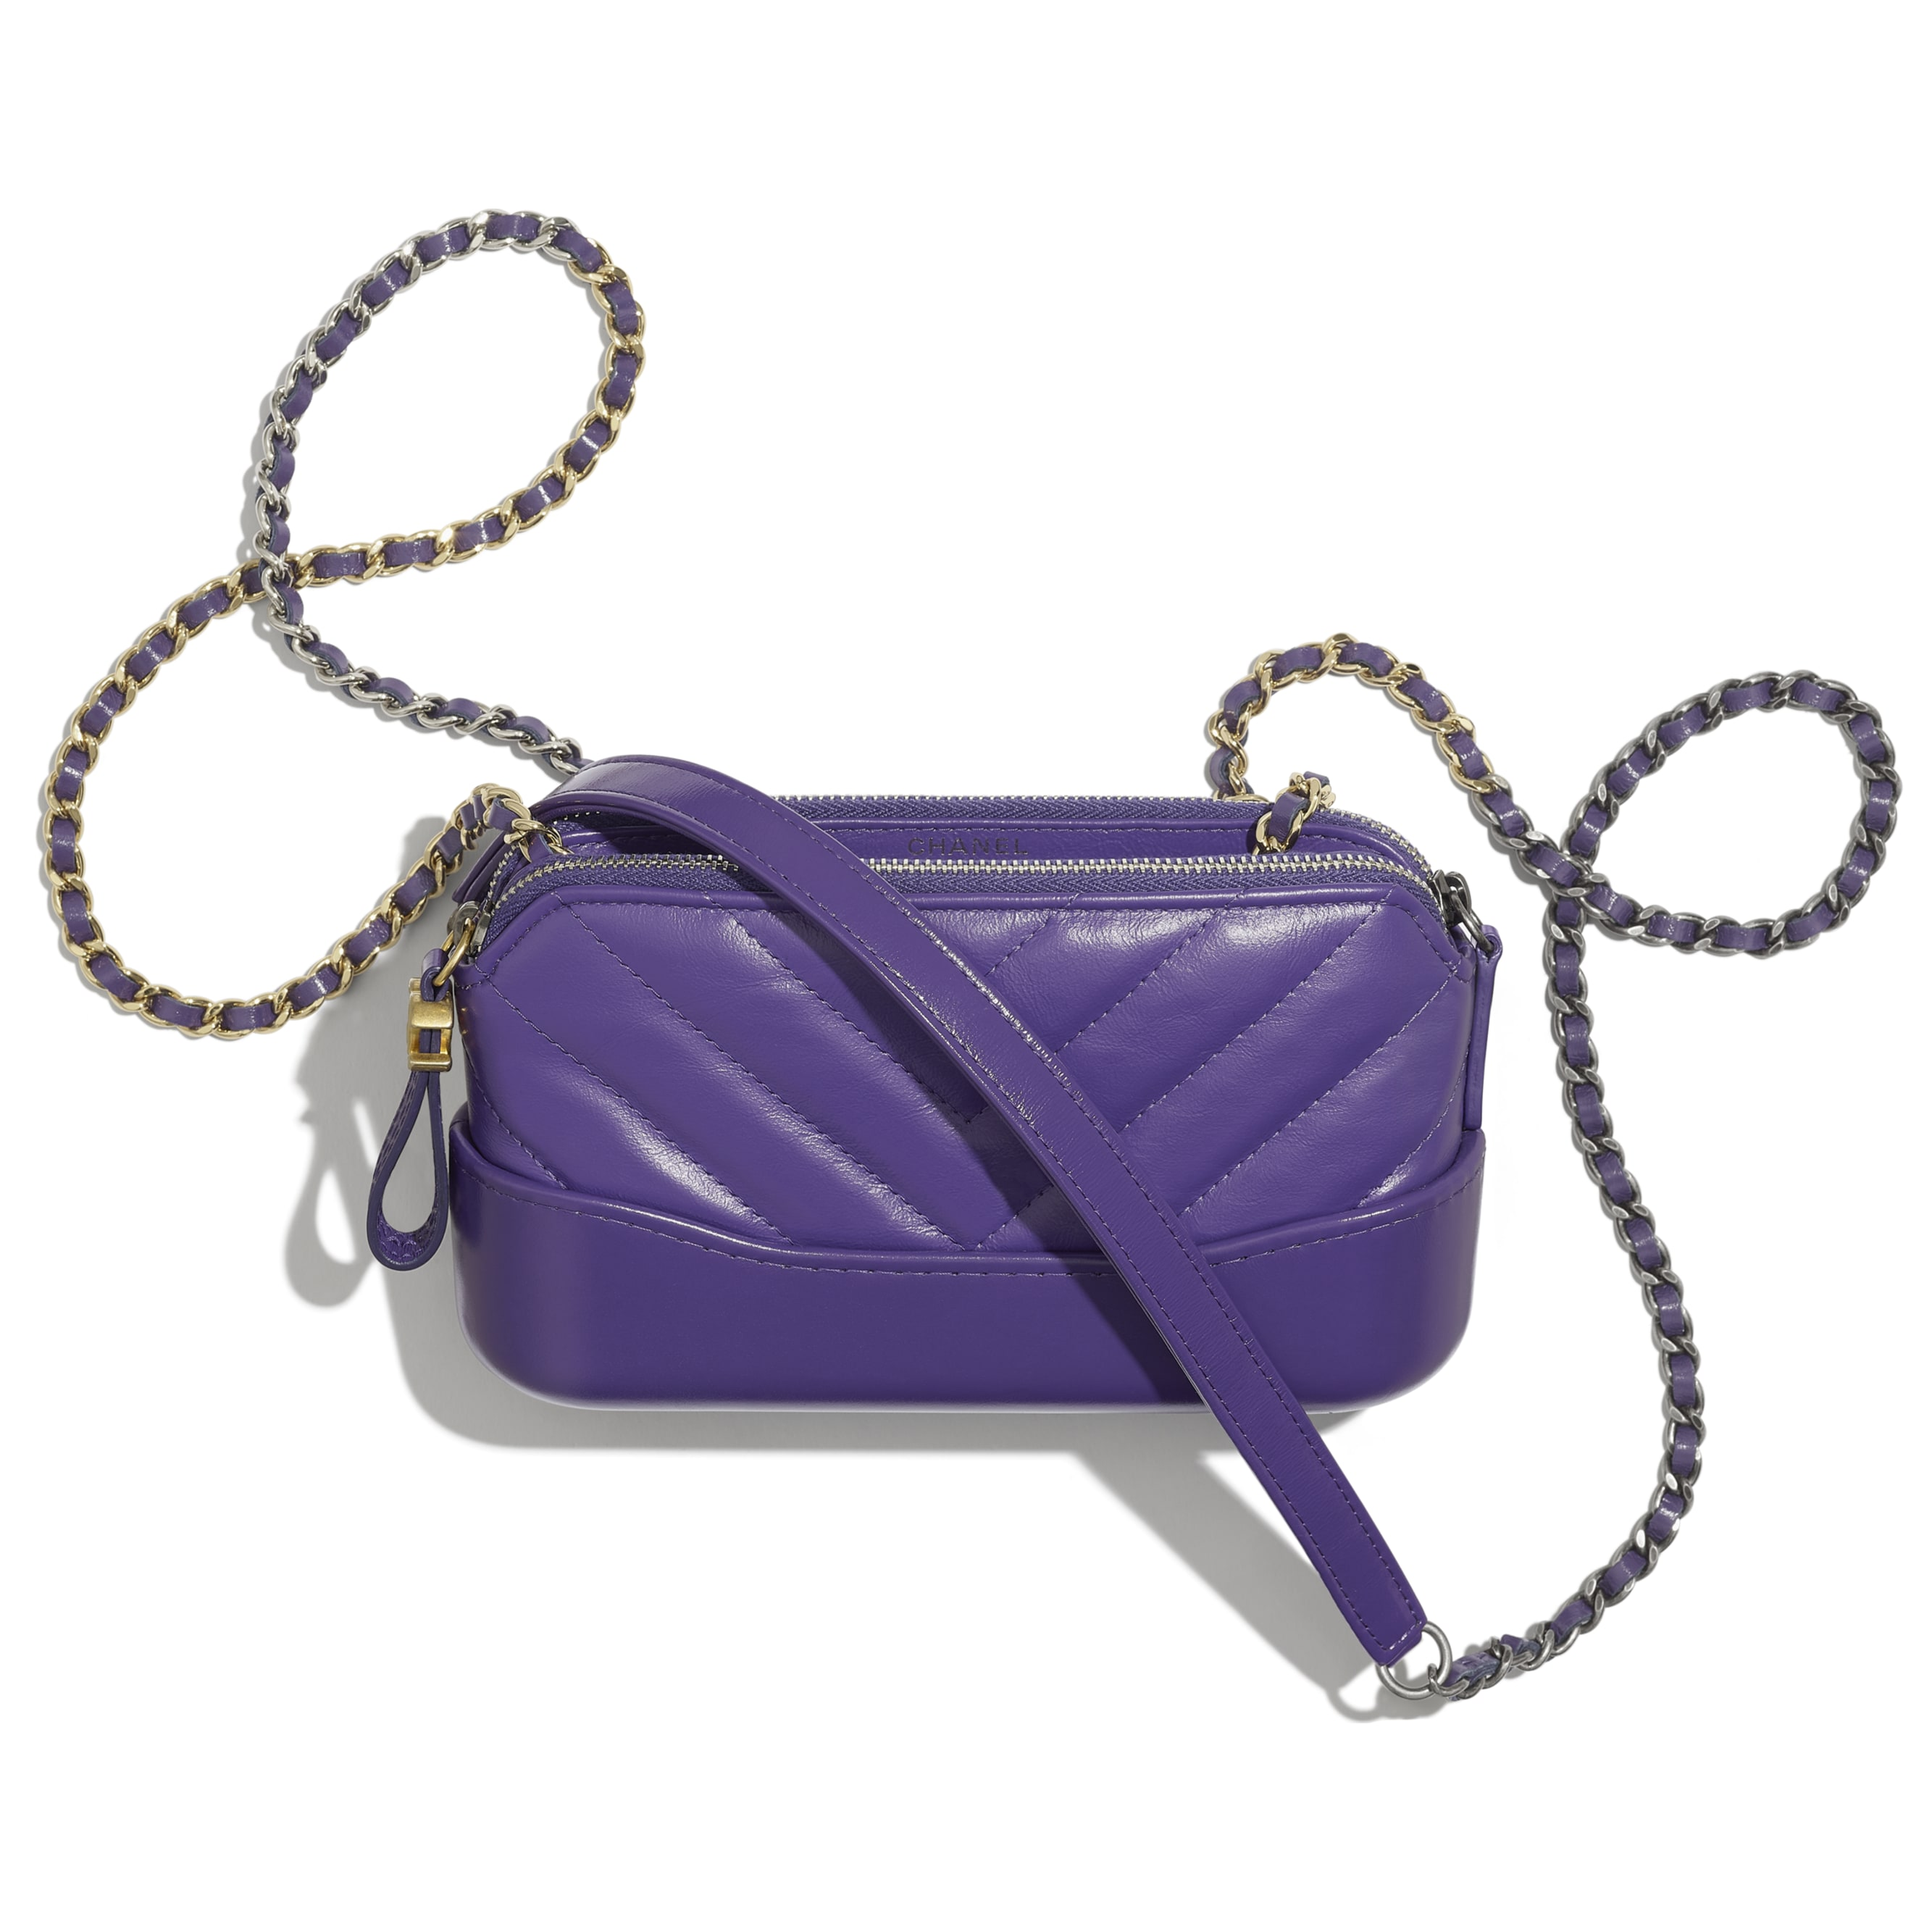 Clutch With Chain - Purple - Aged Calfskin, Smooth Calfskin, Gold-Tone, Silver-Tone & Ruthenium-Finish Metal - CHANEL - Other view - see standard sized version